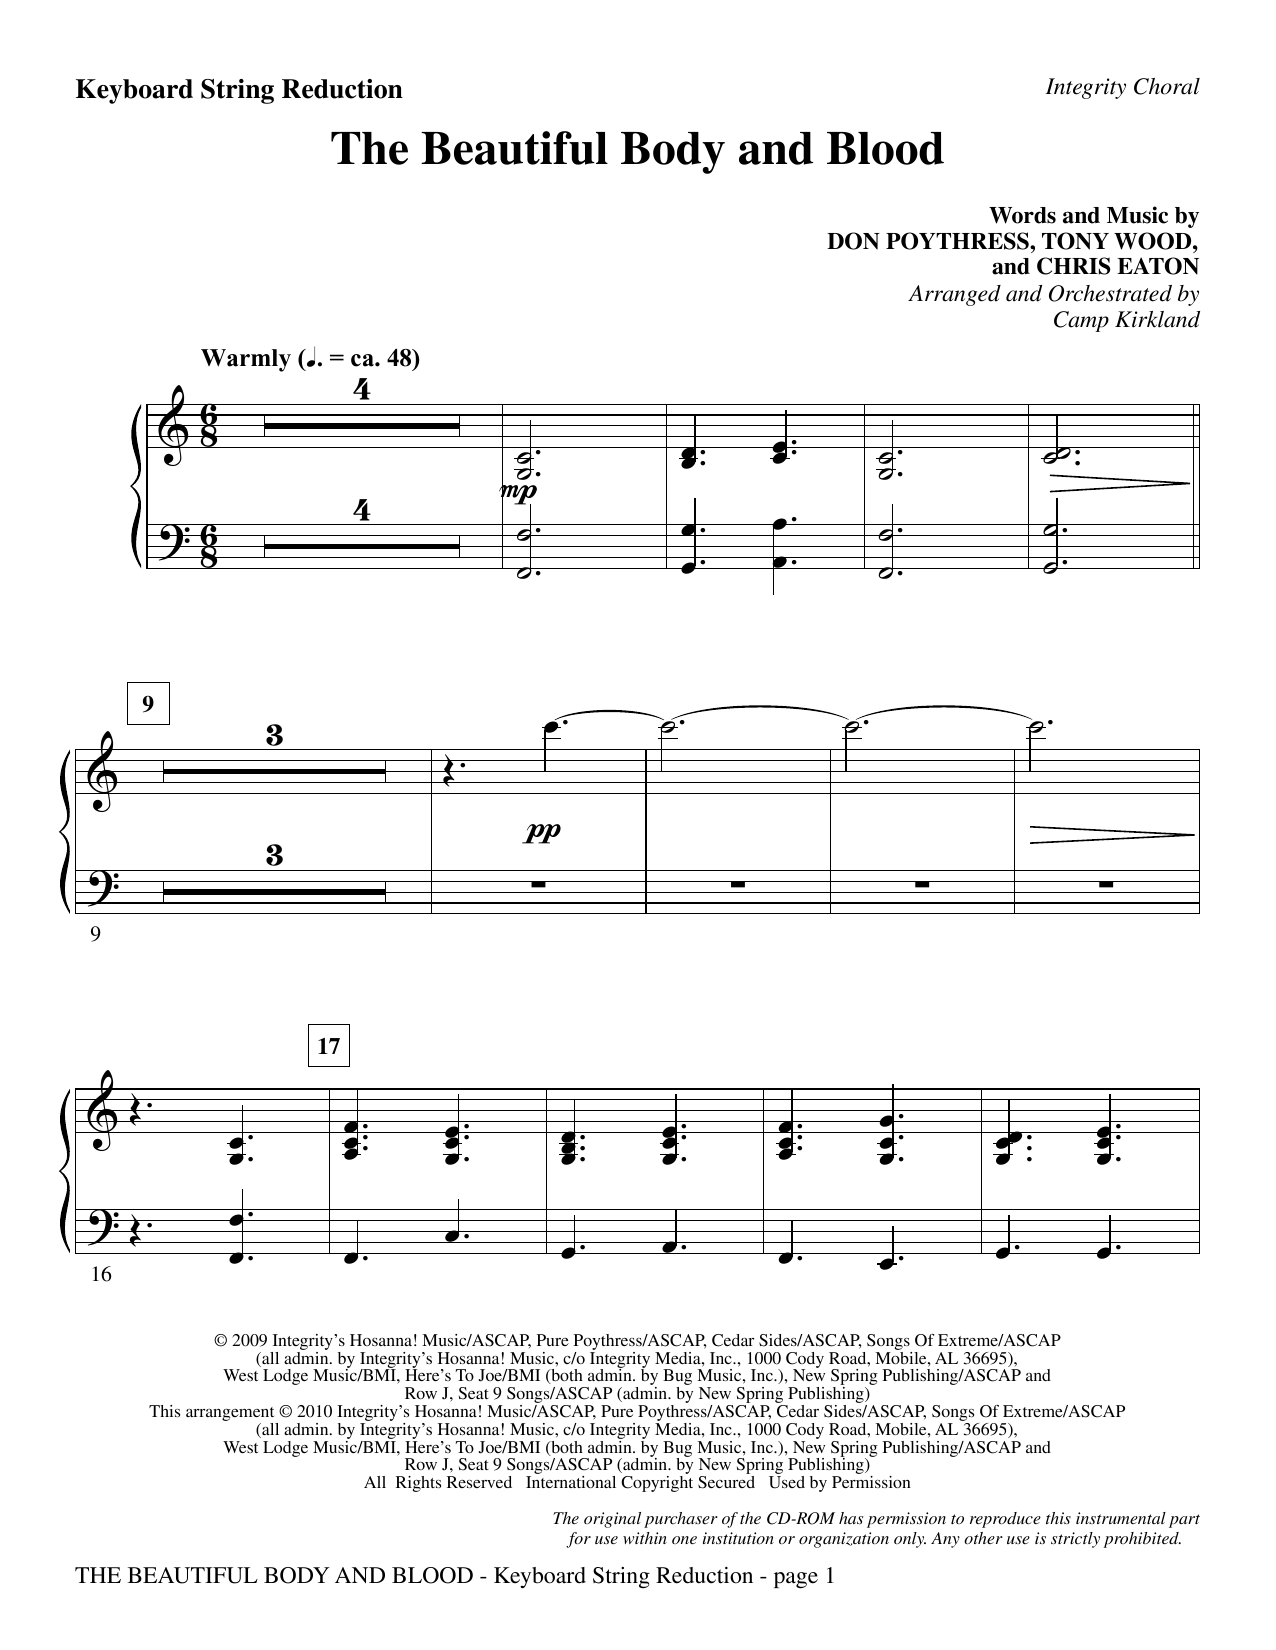 The Beautiful Body And Blood - Keyboard String Reduction sheet music